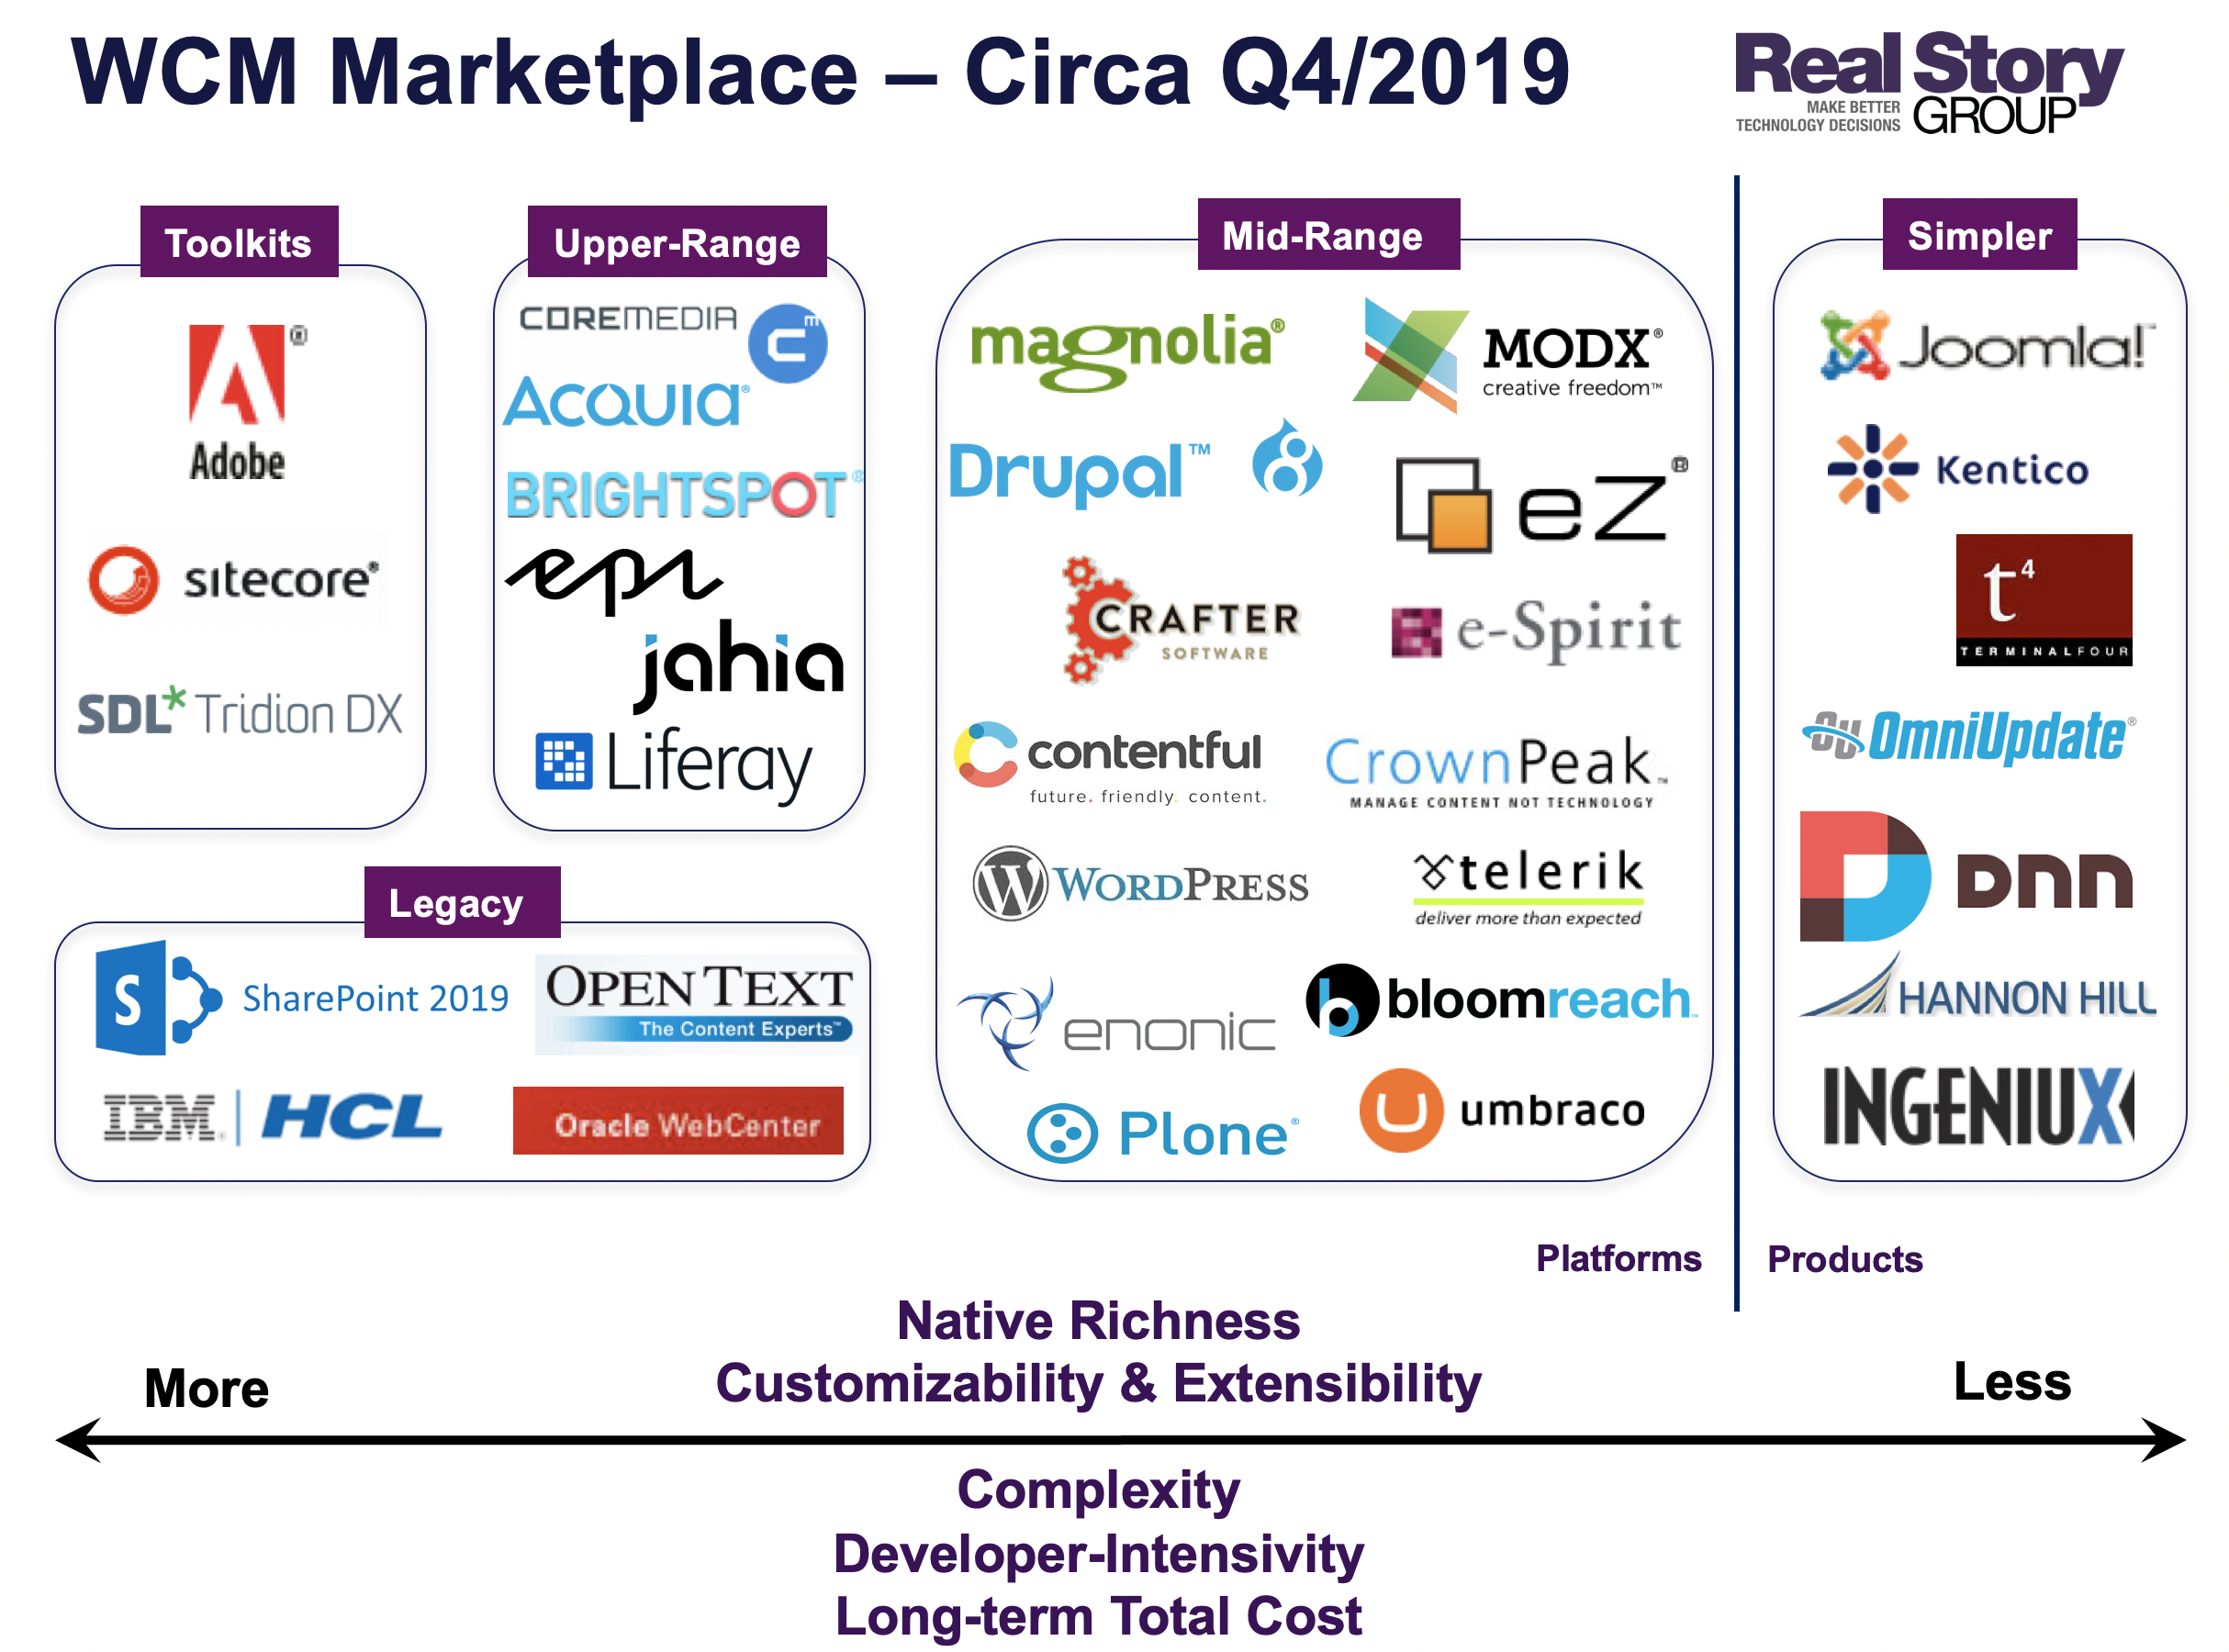 WCM Marketplace According to RSG, Circa 2019